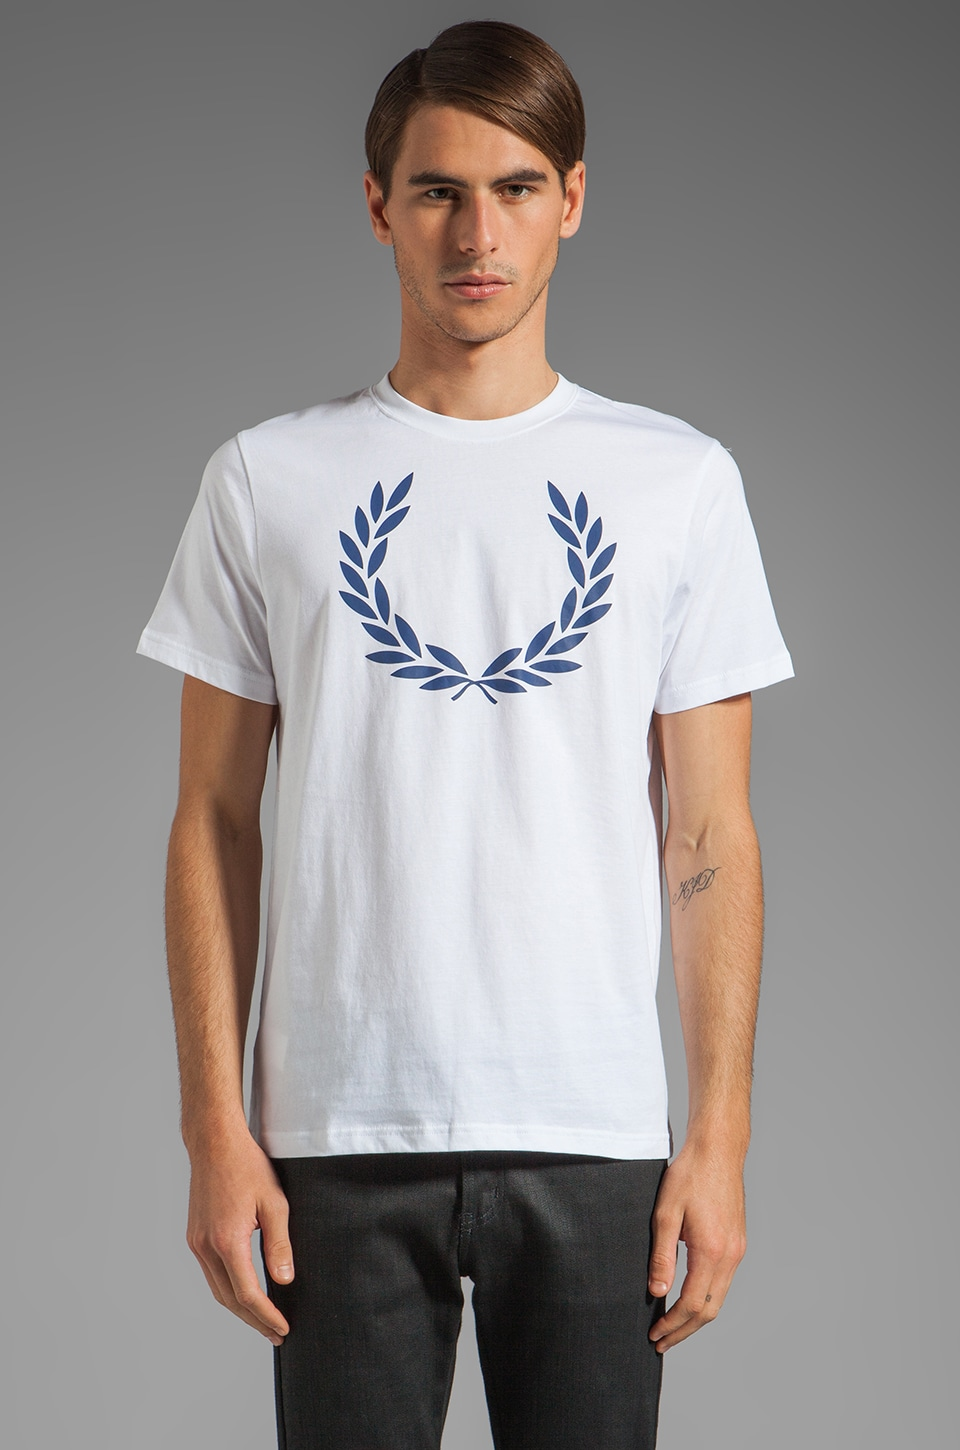 Fred Perry Laurel Print T-Shirt in White/Medieval Blue